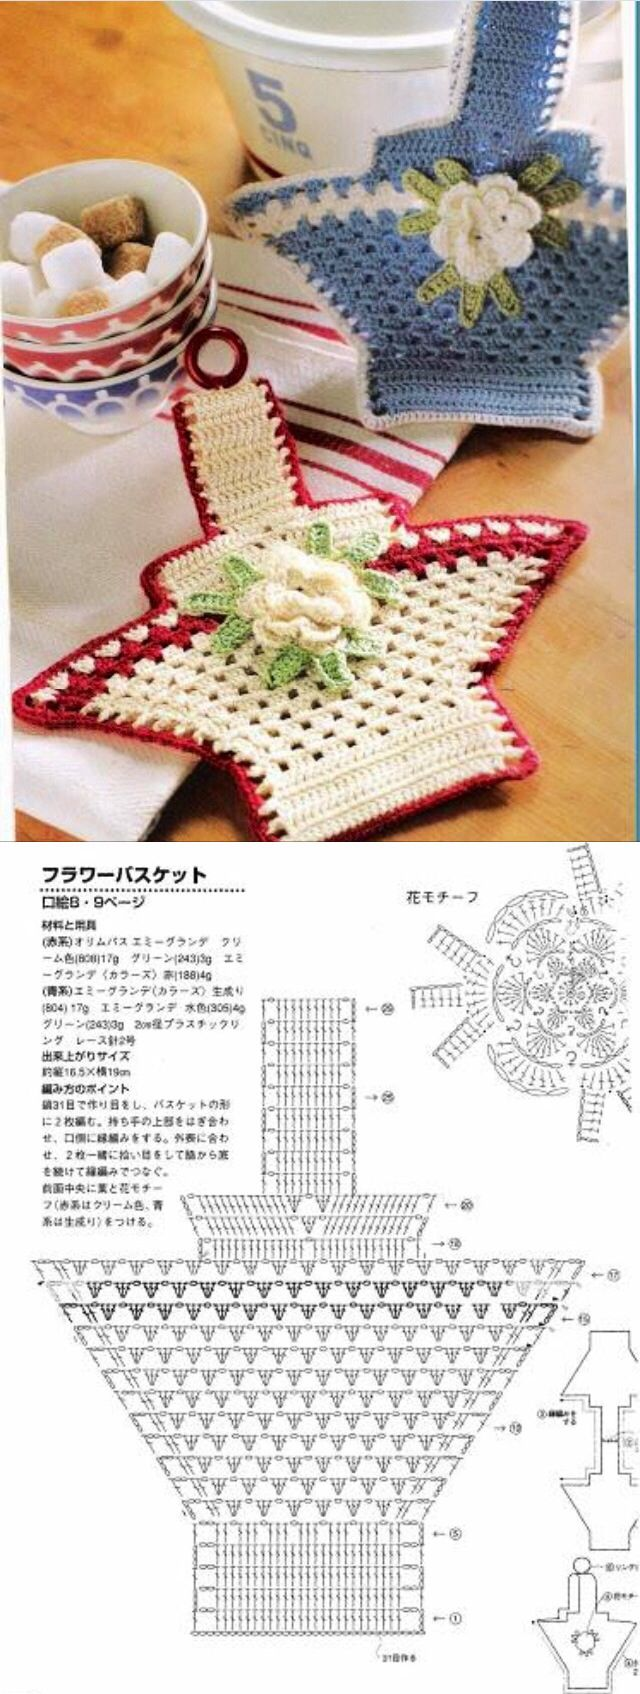 Vintage crochet kitchen basket potholder diagram pattern. | CROCHET ...